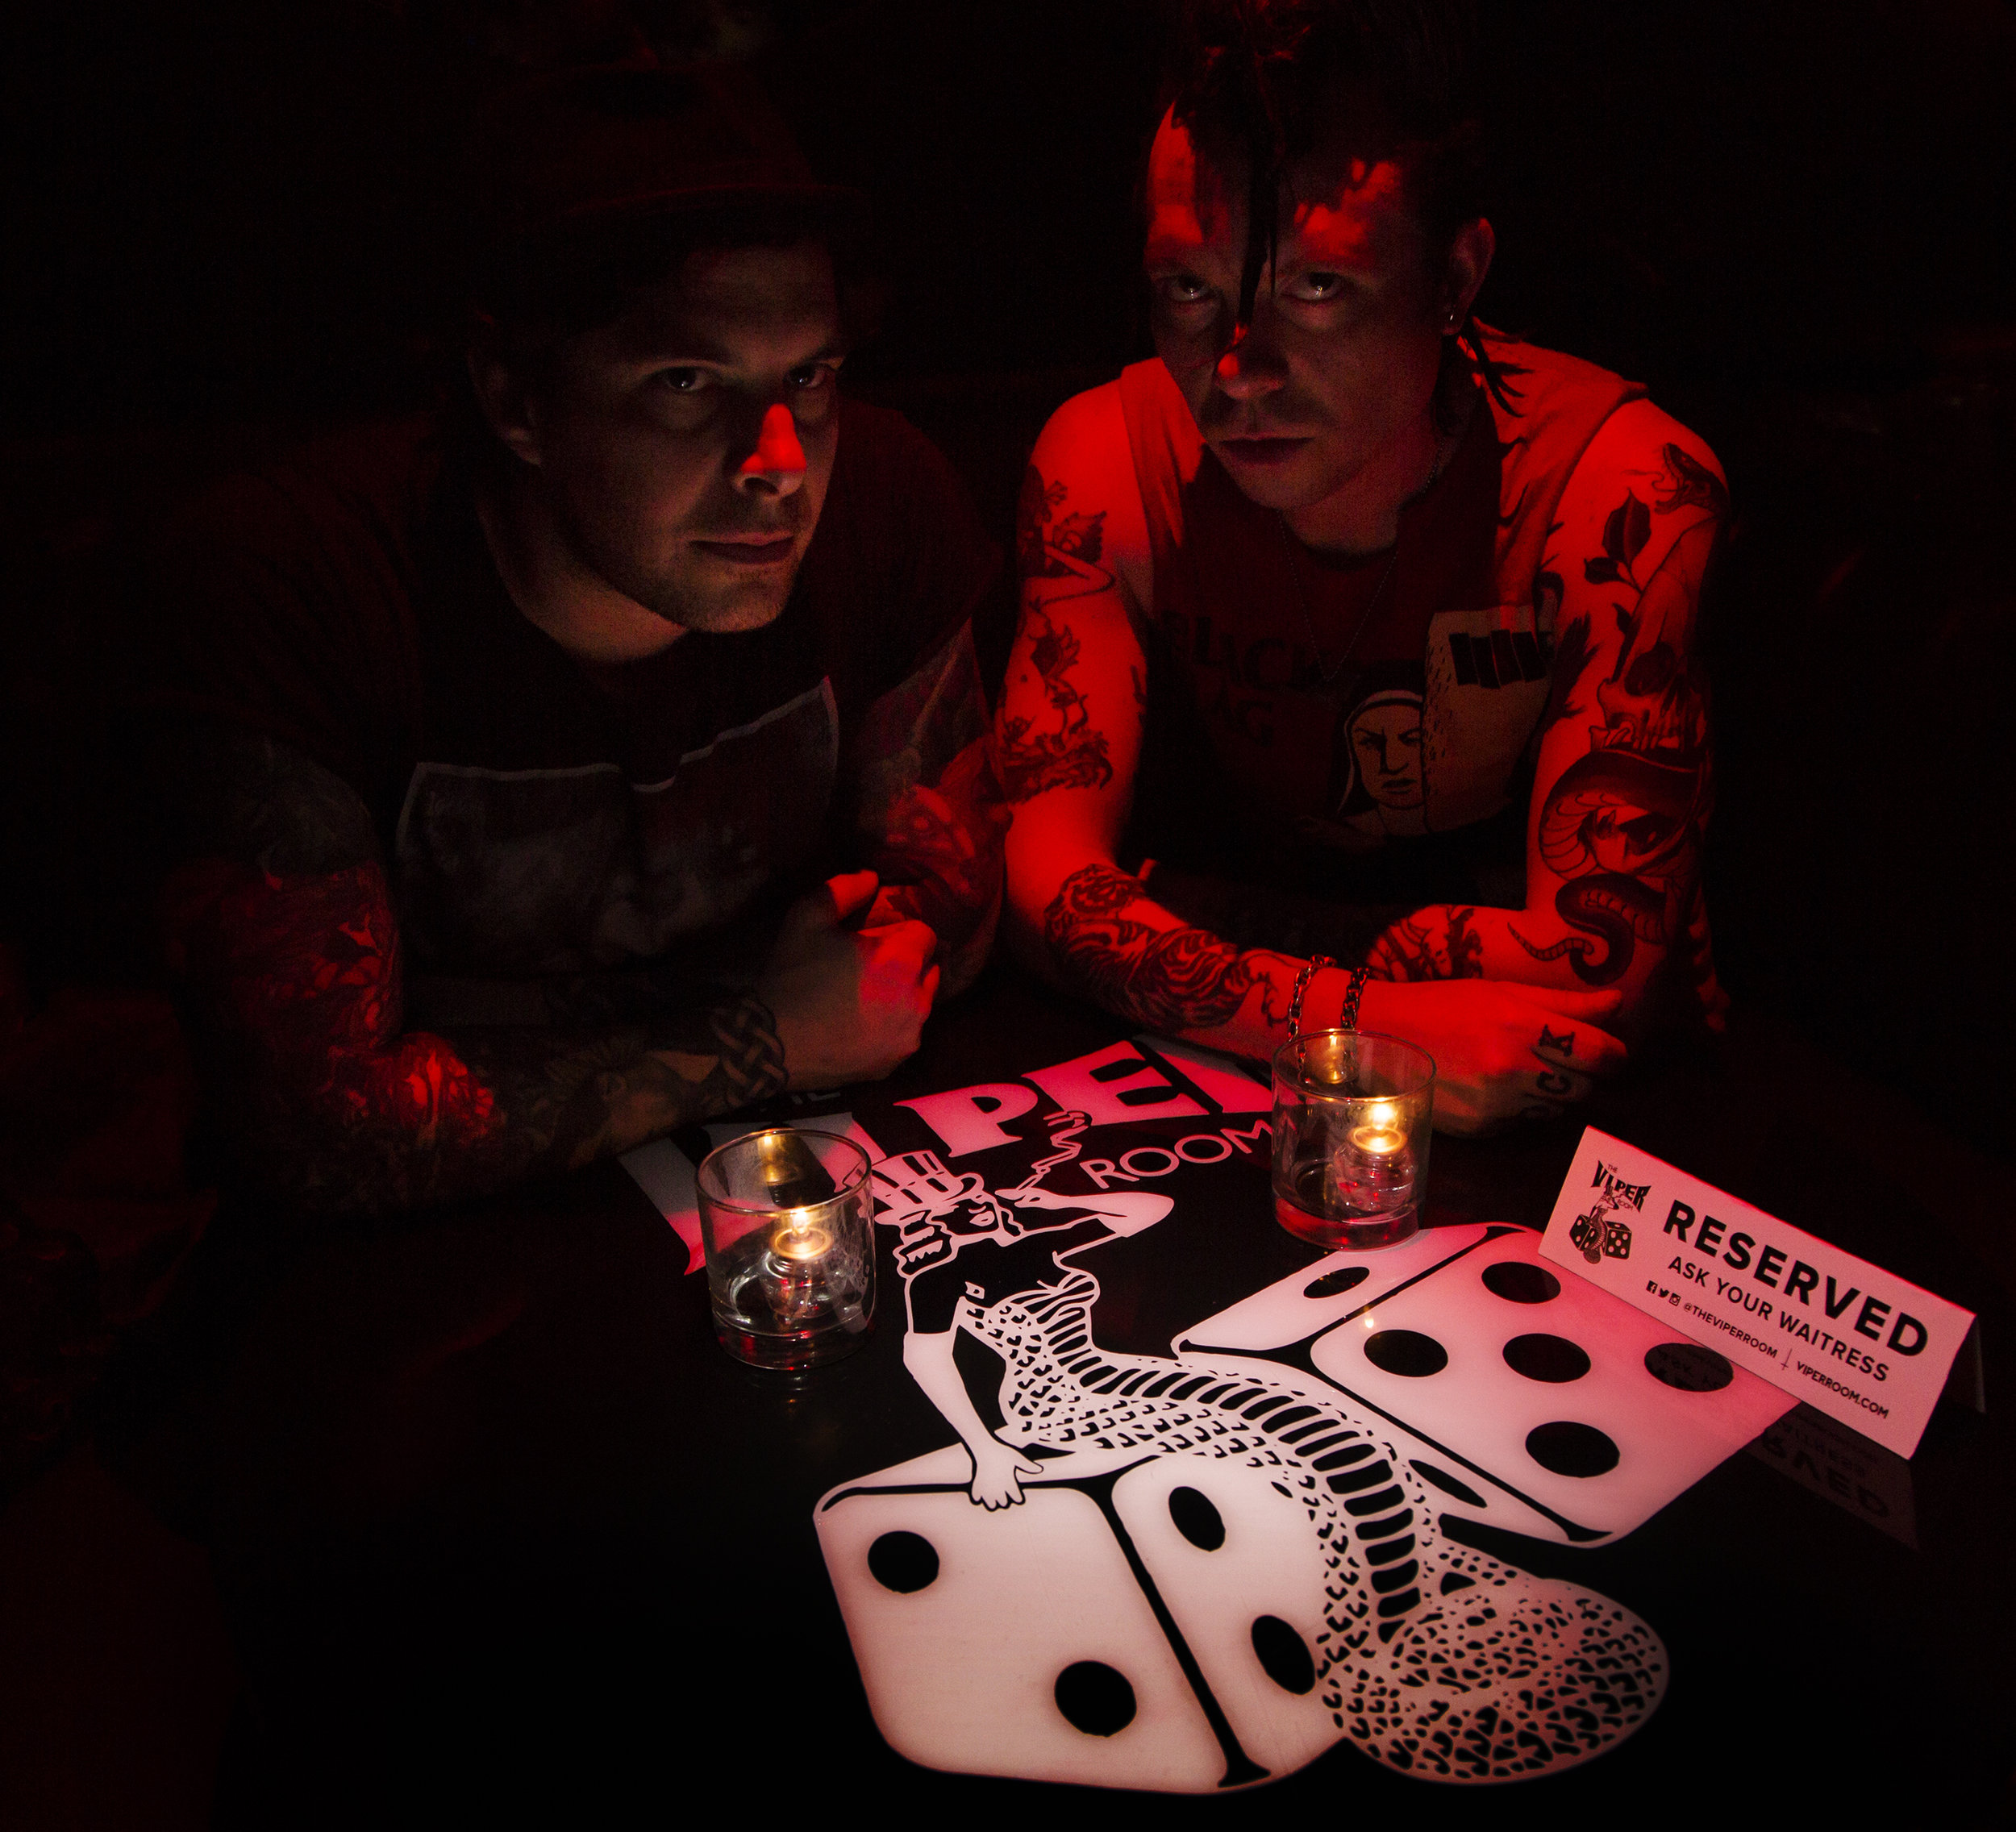 Photo by Rob Berezowski taken at the Viper Room, Los Angeles.